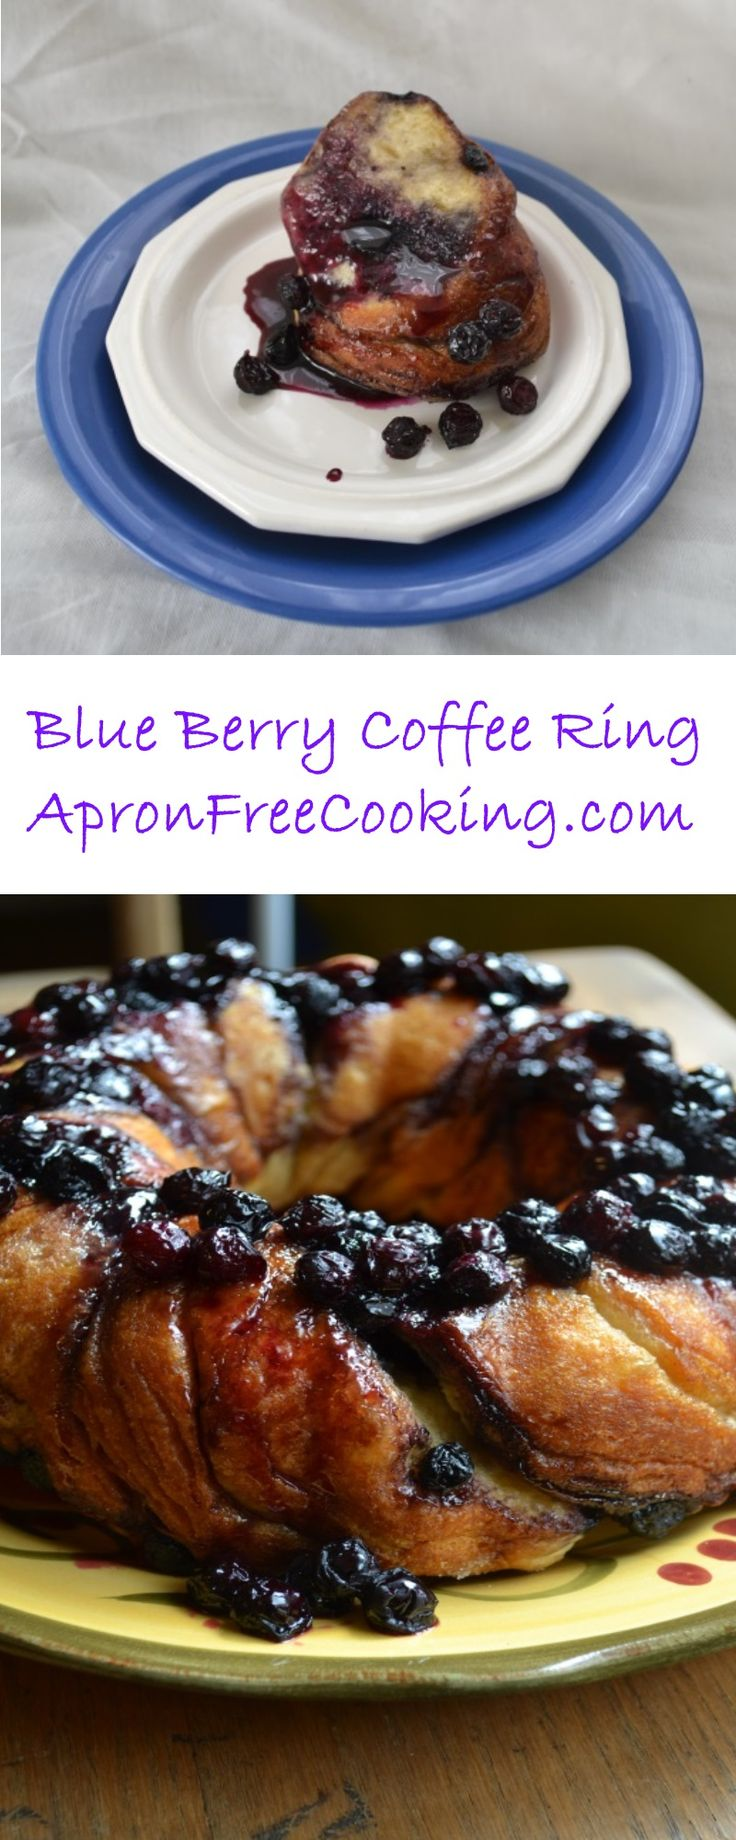 Simply+Delicious!+This+Blue+Berry+Coffee+Ring+from+ApronFreeCooking.com+is+easy+to+make+and+looks+amazing!+